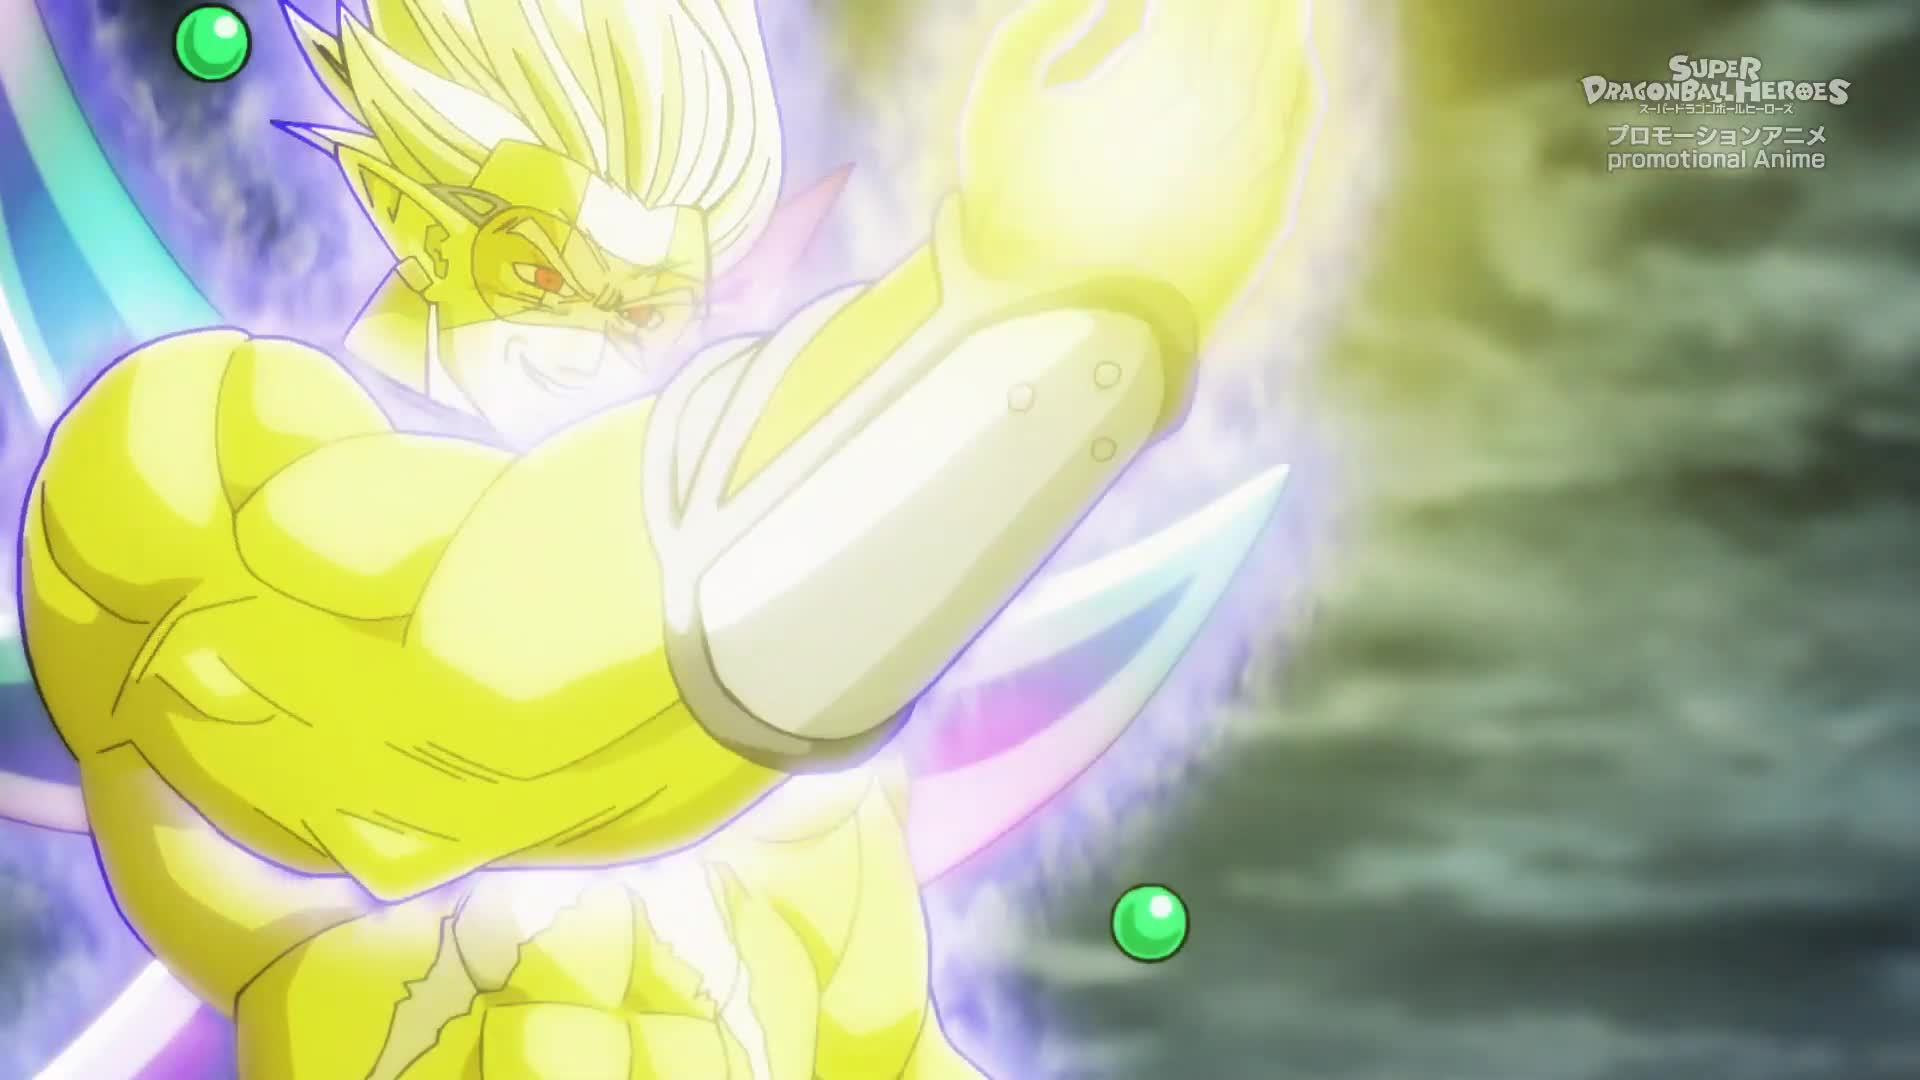 y2mate.com - super_dragon_ball_heroes_episode_17_gogeta_returns_iws-xMZVPRw_1080p_7308.jpg